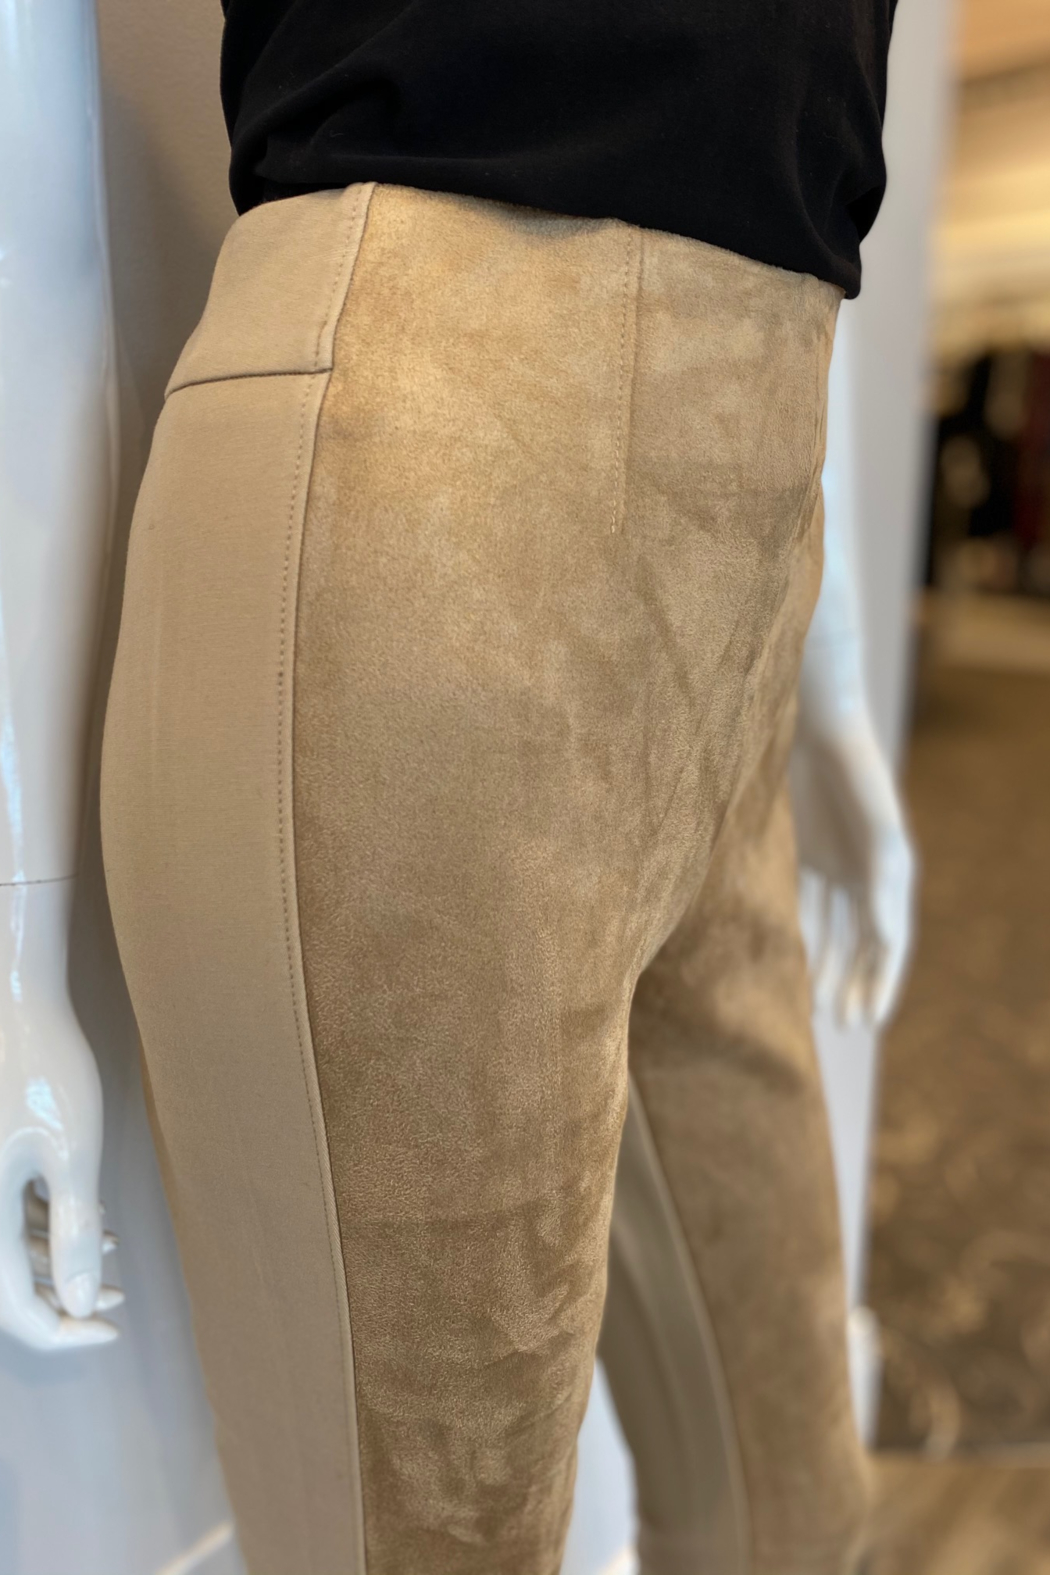 ByLyse 710-6187 - PANT - Front Full Image